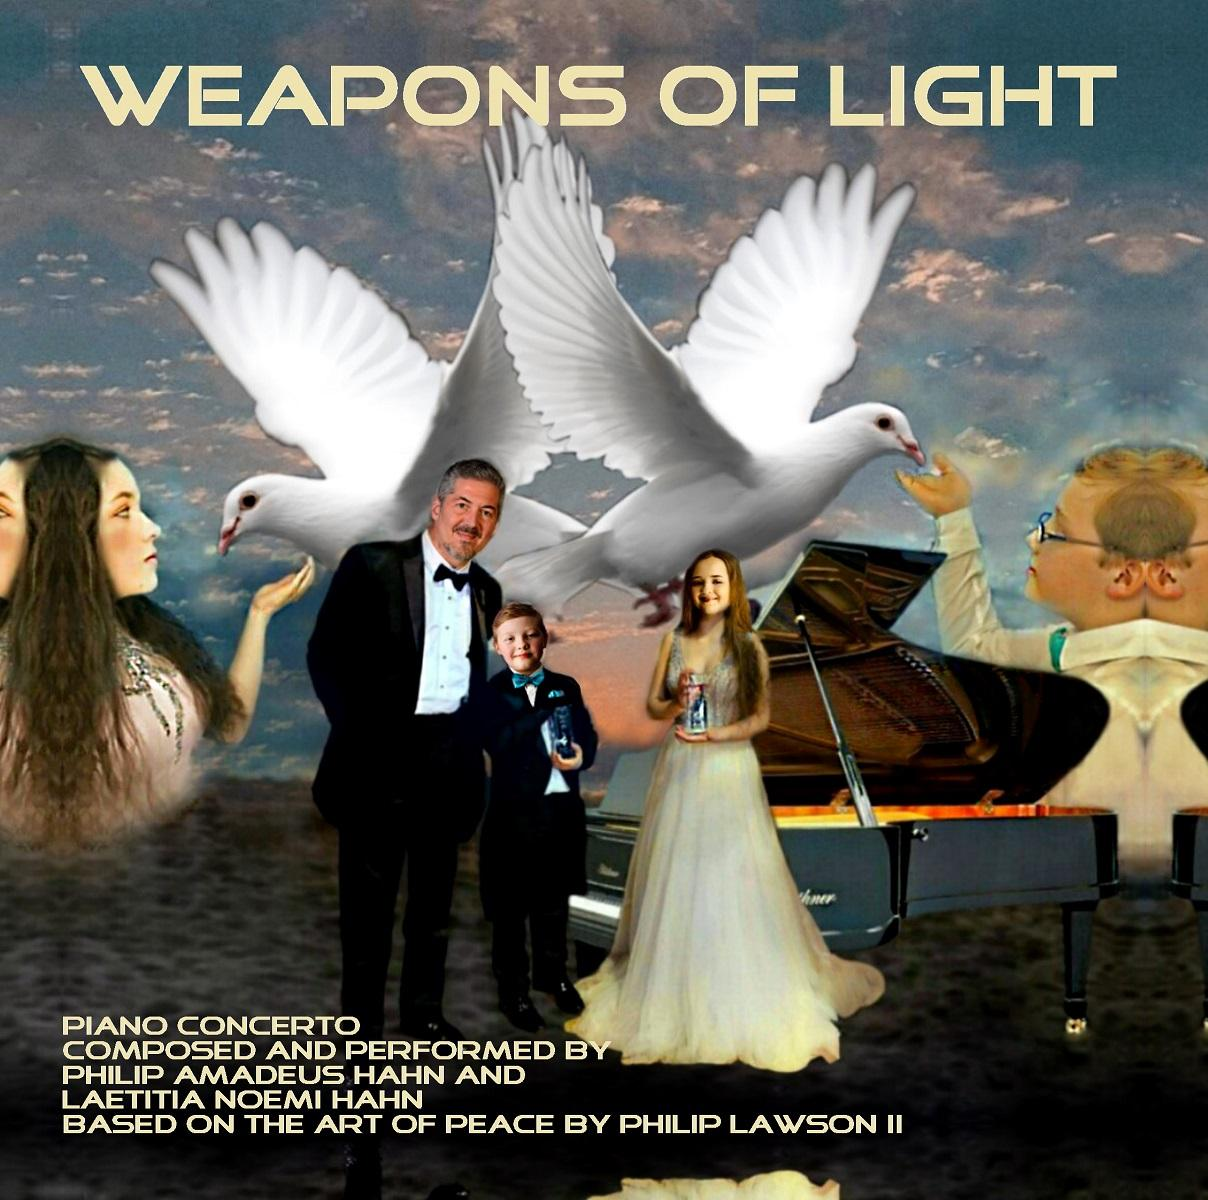 Weapons of Light